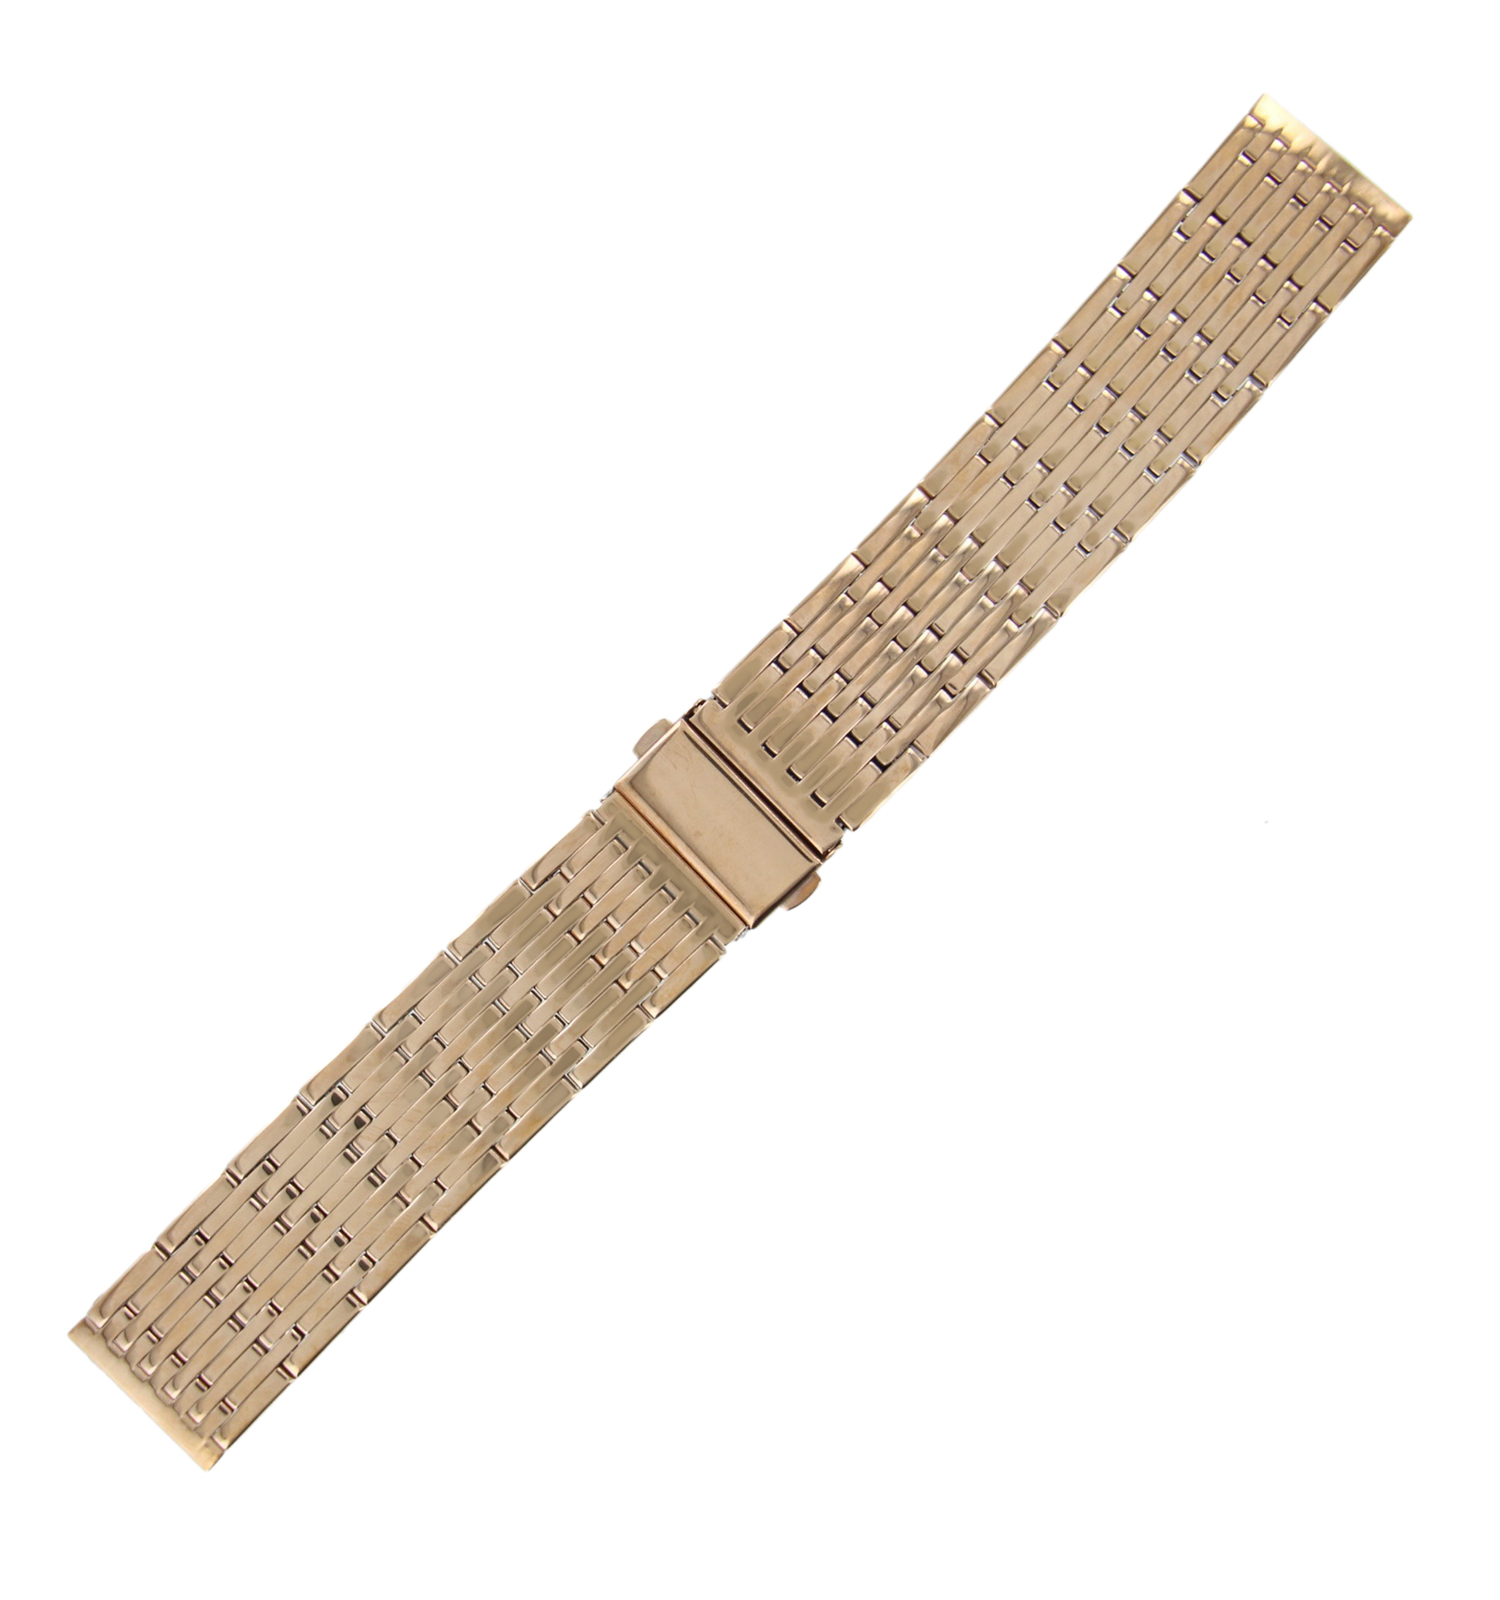 Hadley-Roma MB9274R 24mm Mens Watch Band Rose Gold Tone Wide Link